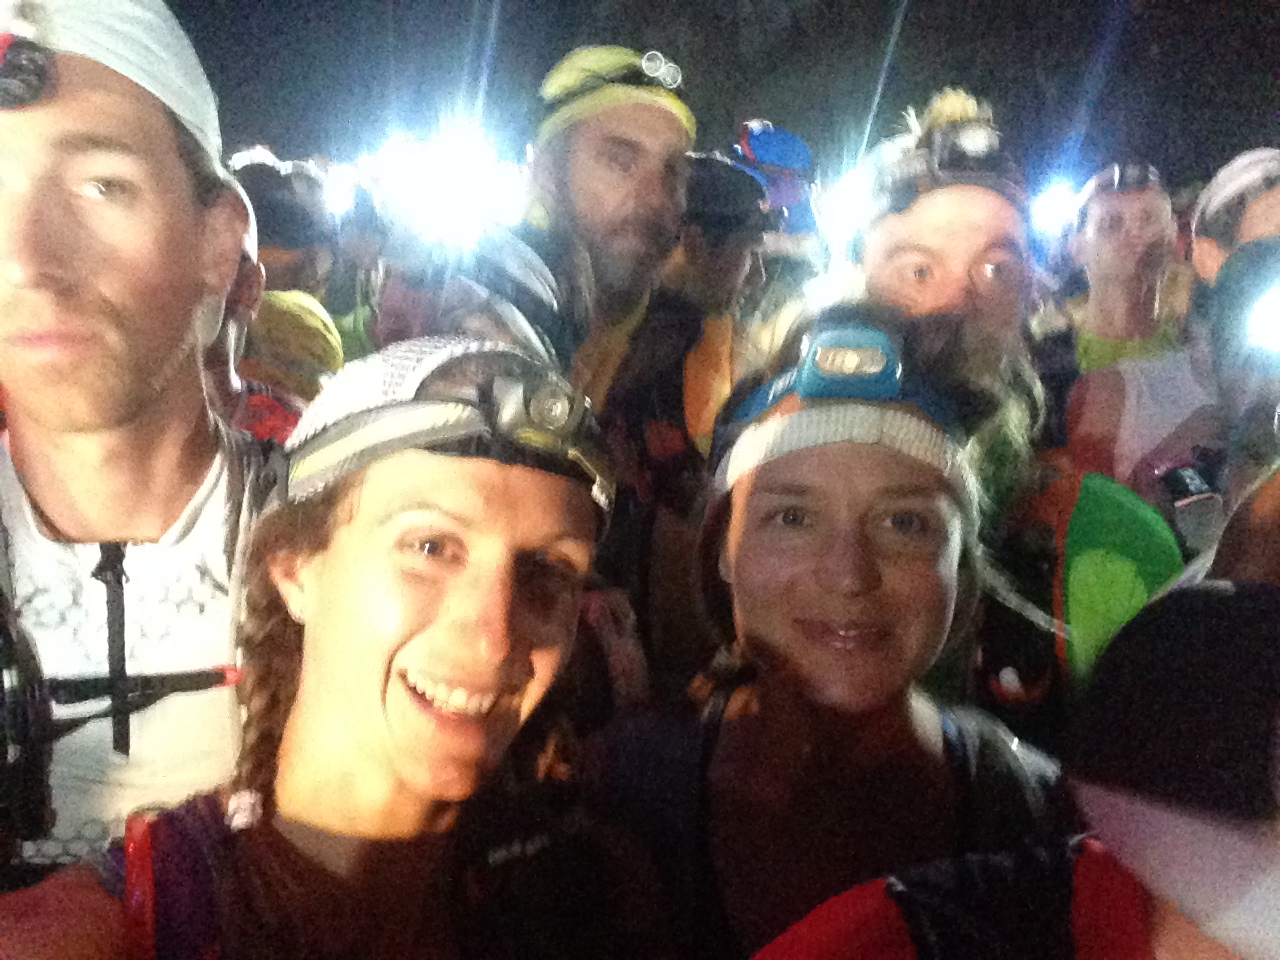 2000+ runners lined up for the 2014 Transvulcania